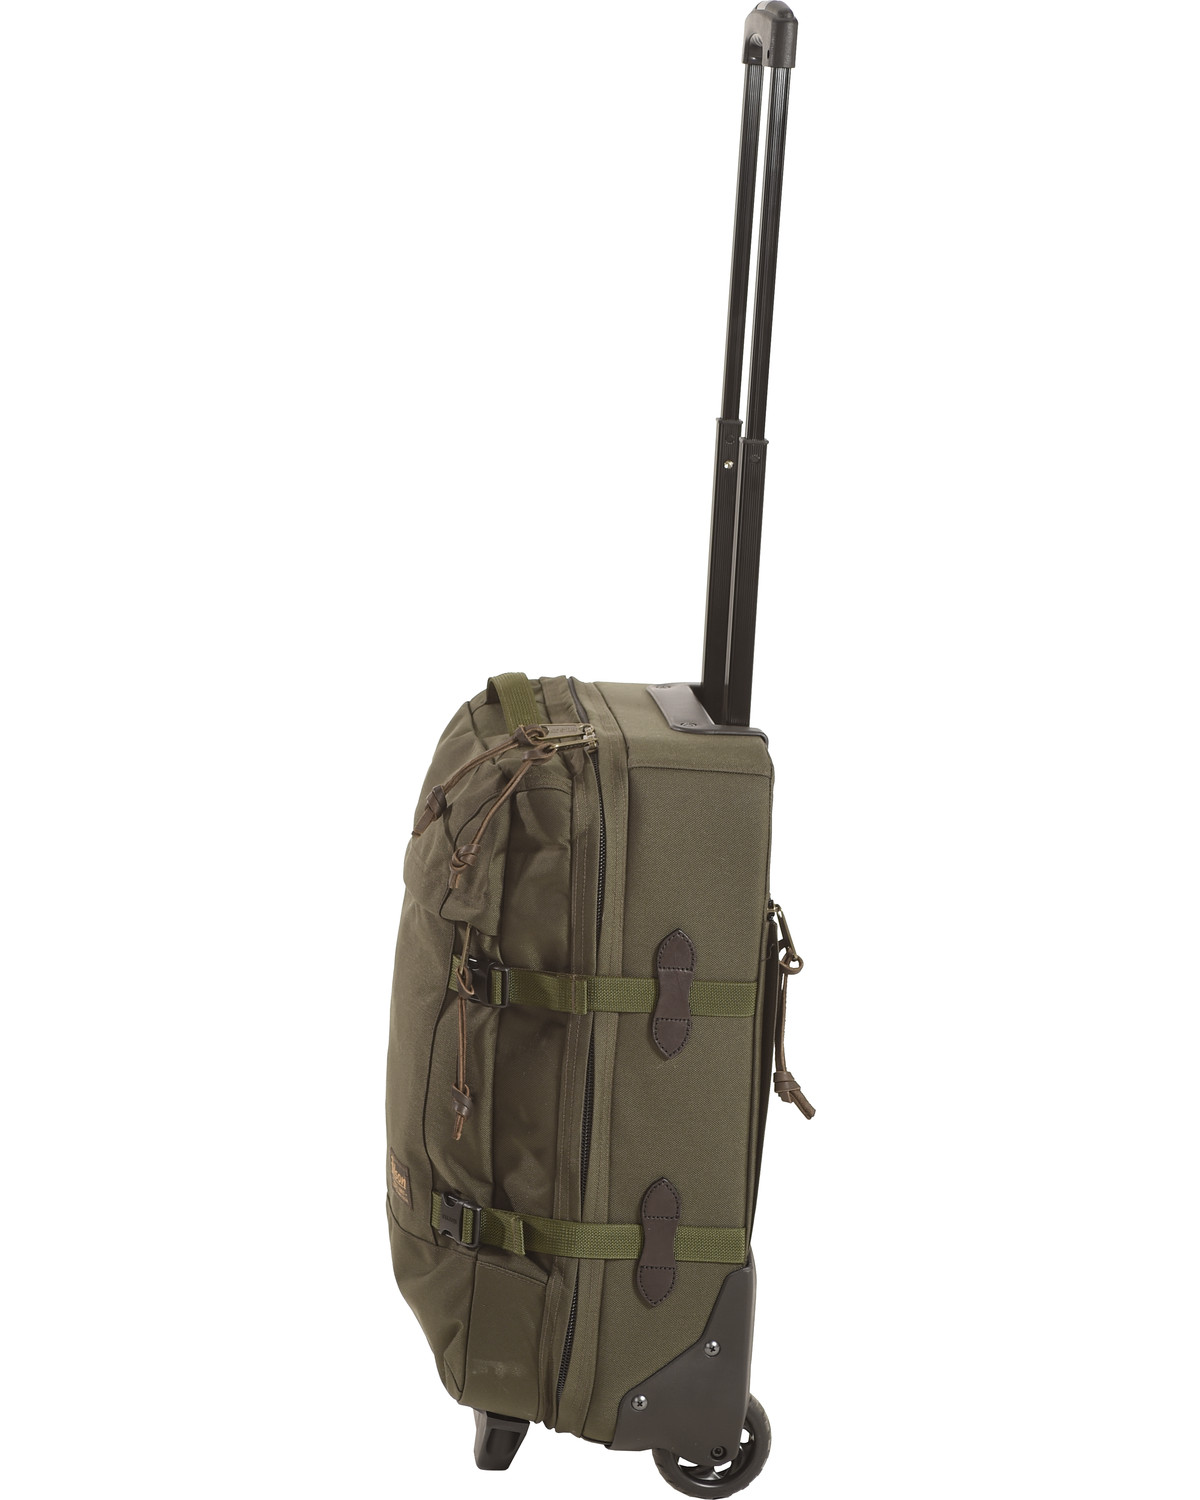 a7680c19fb Filson Otter Green Dryden 2-Wheel Carry-On Bag - Country Outfitter